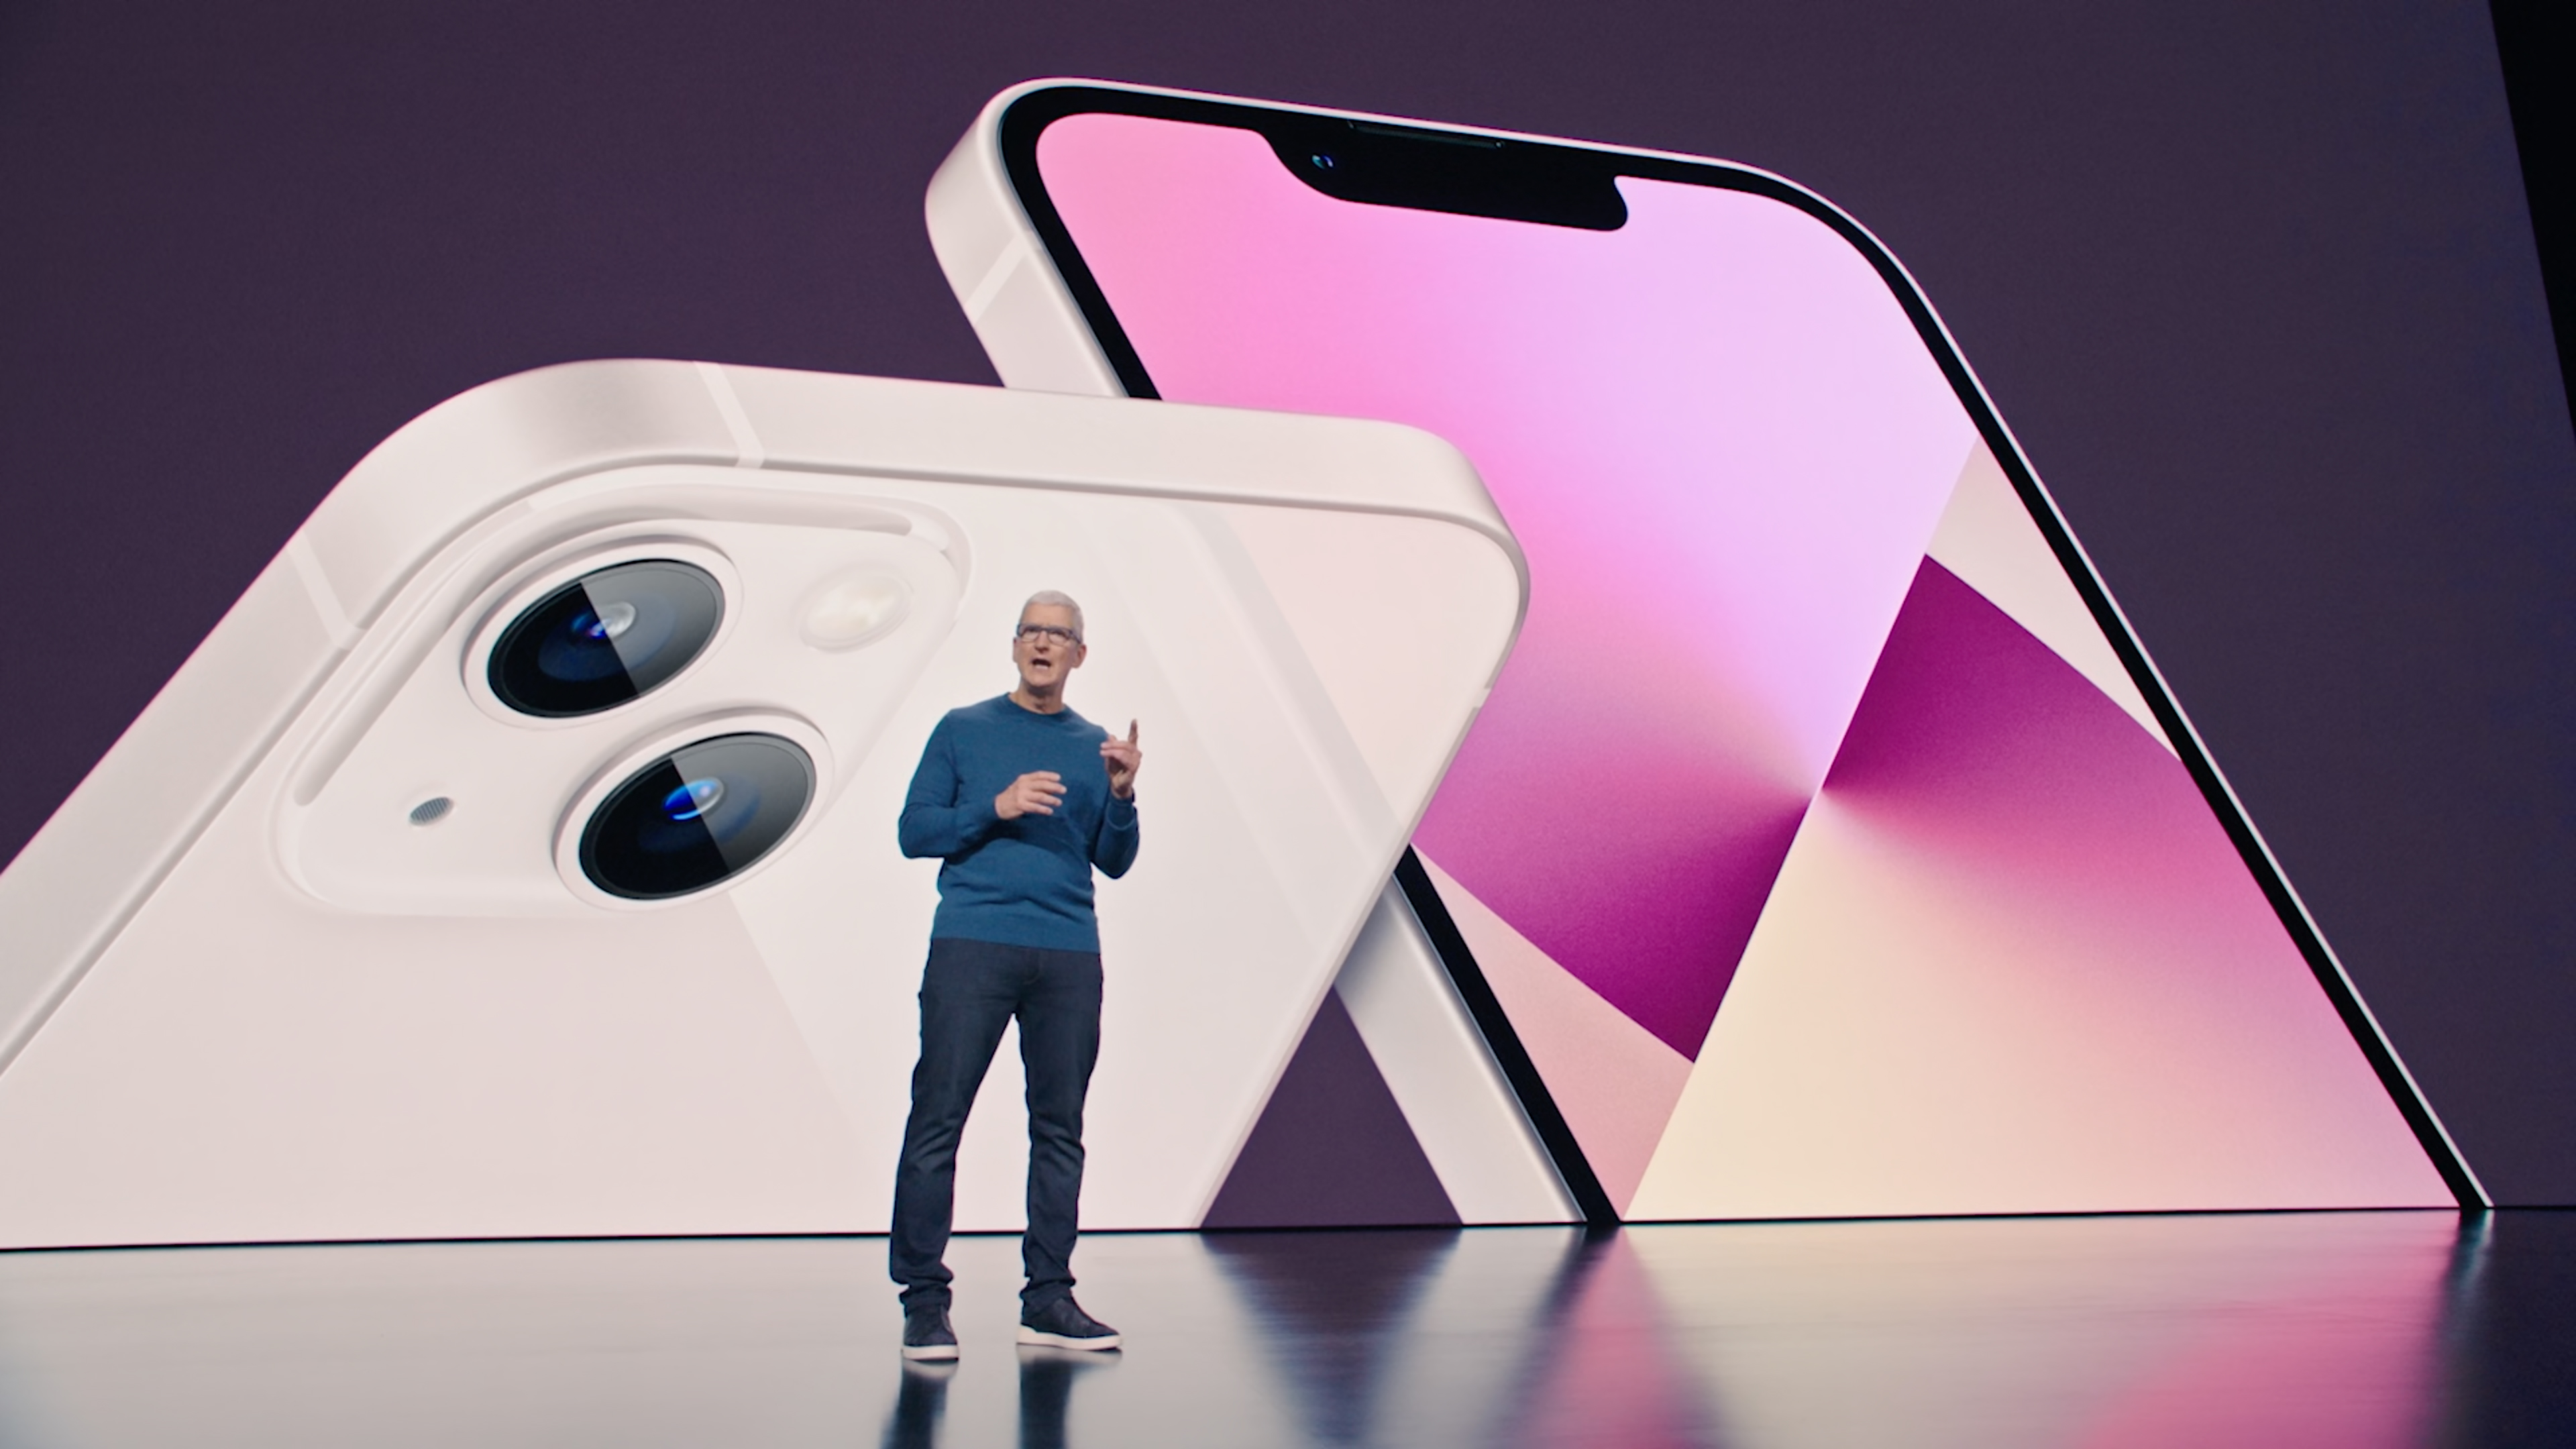 Apple's best iPhone 13 features are the ridiculous trade-in offers, not the specs     - CNET